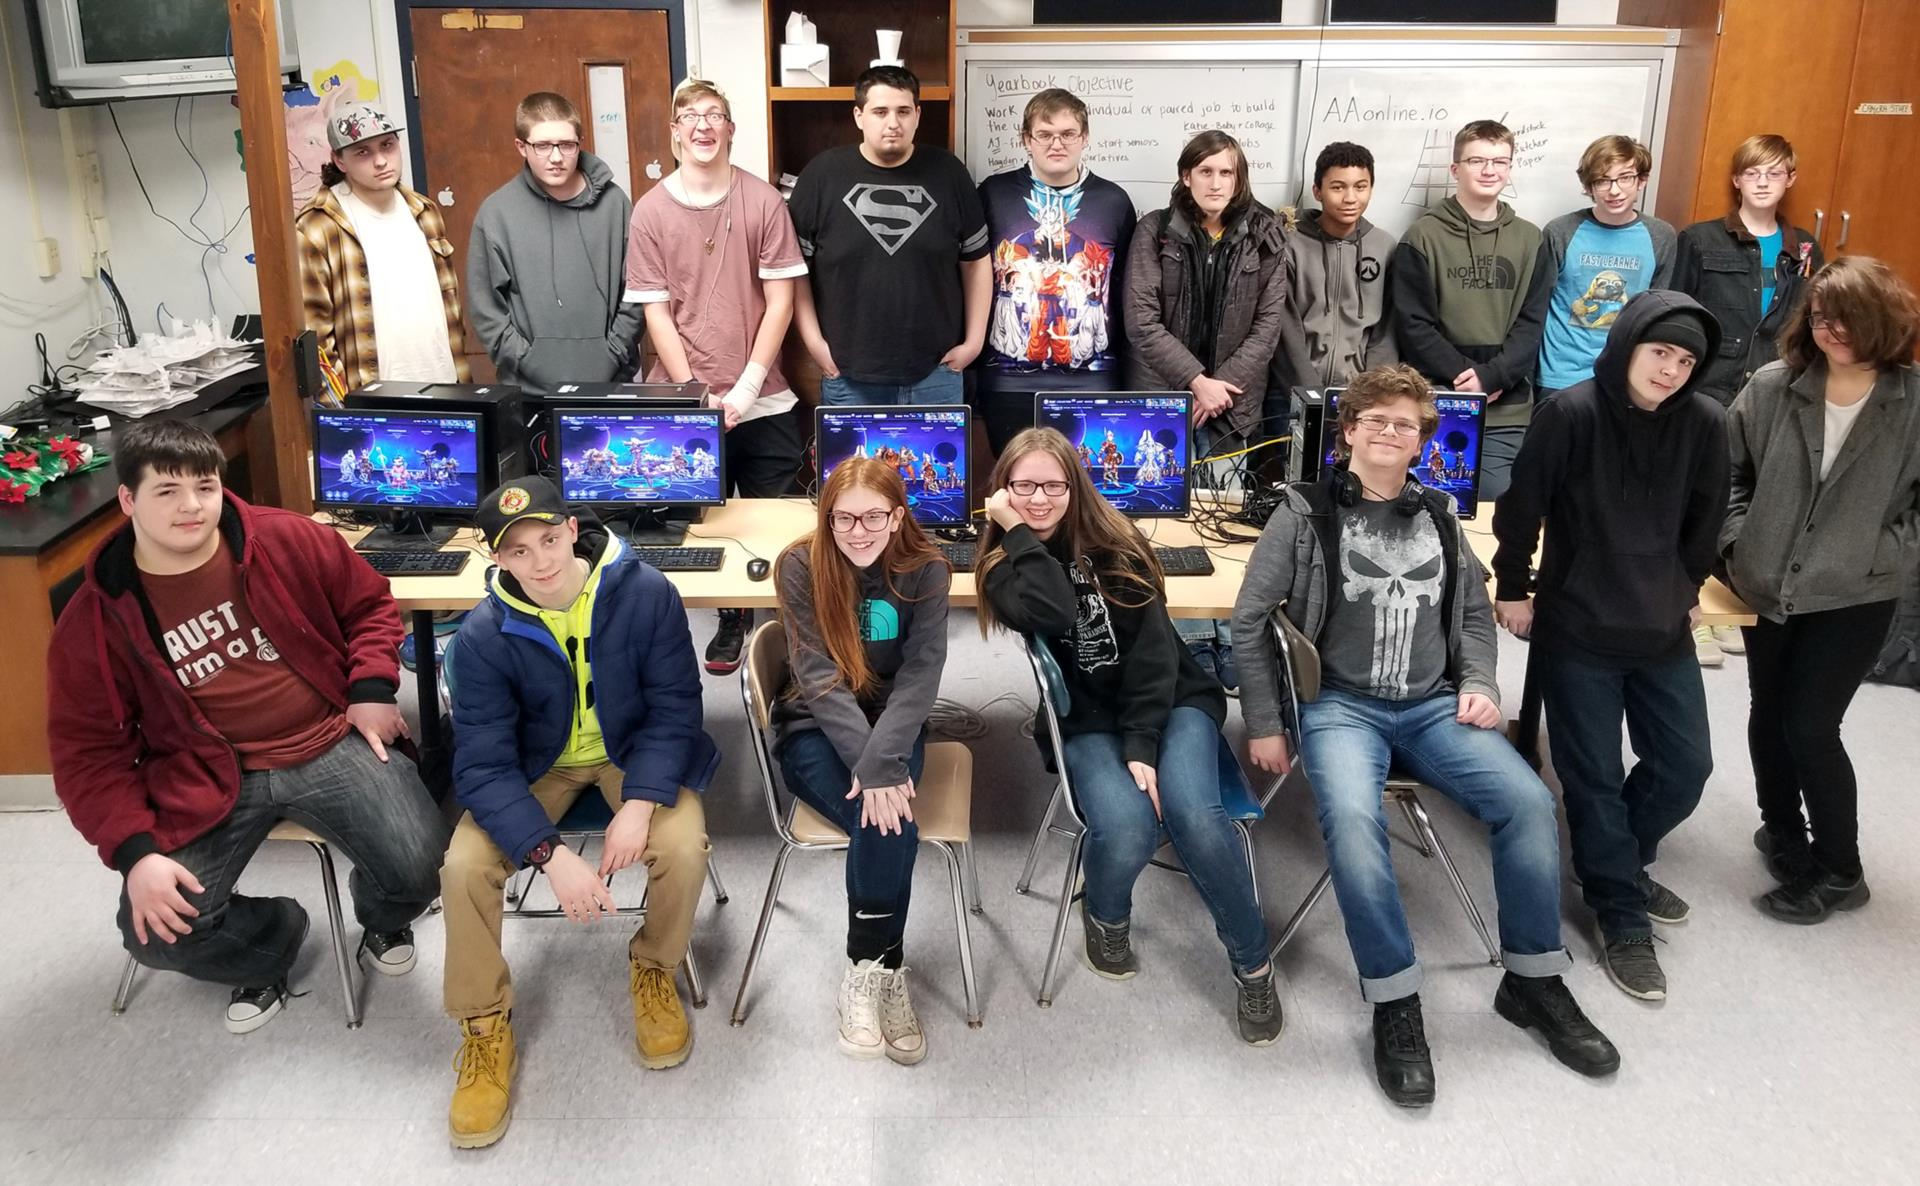 NHS students posing with computers